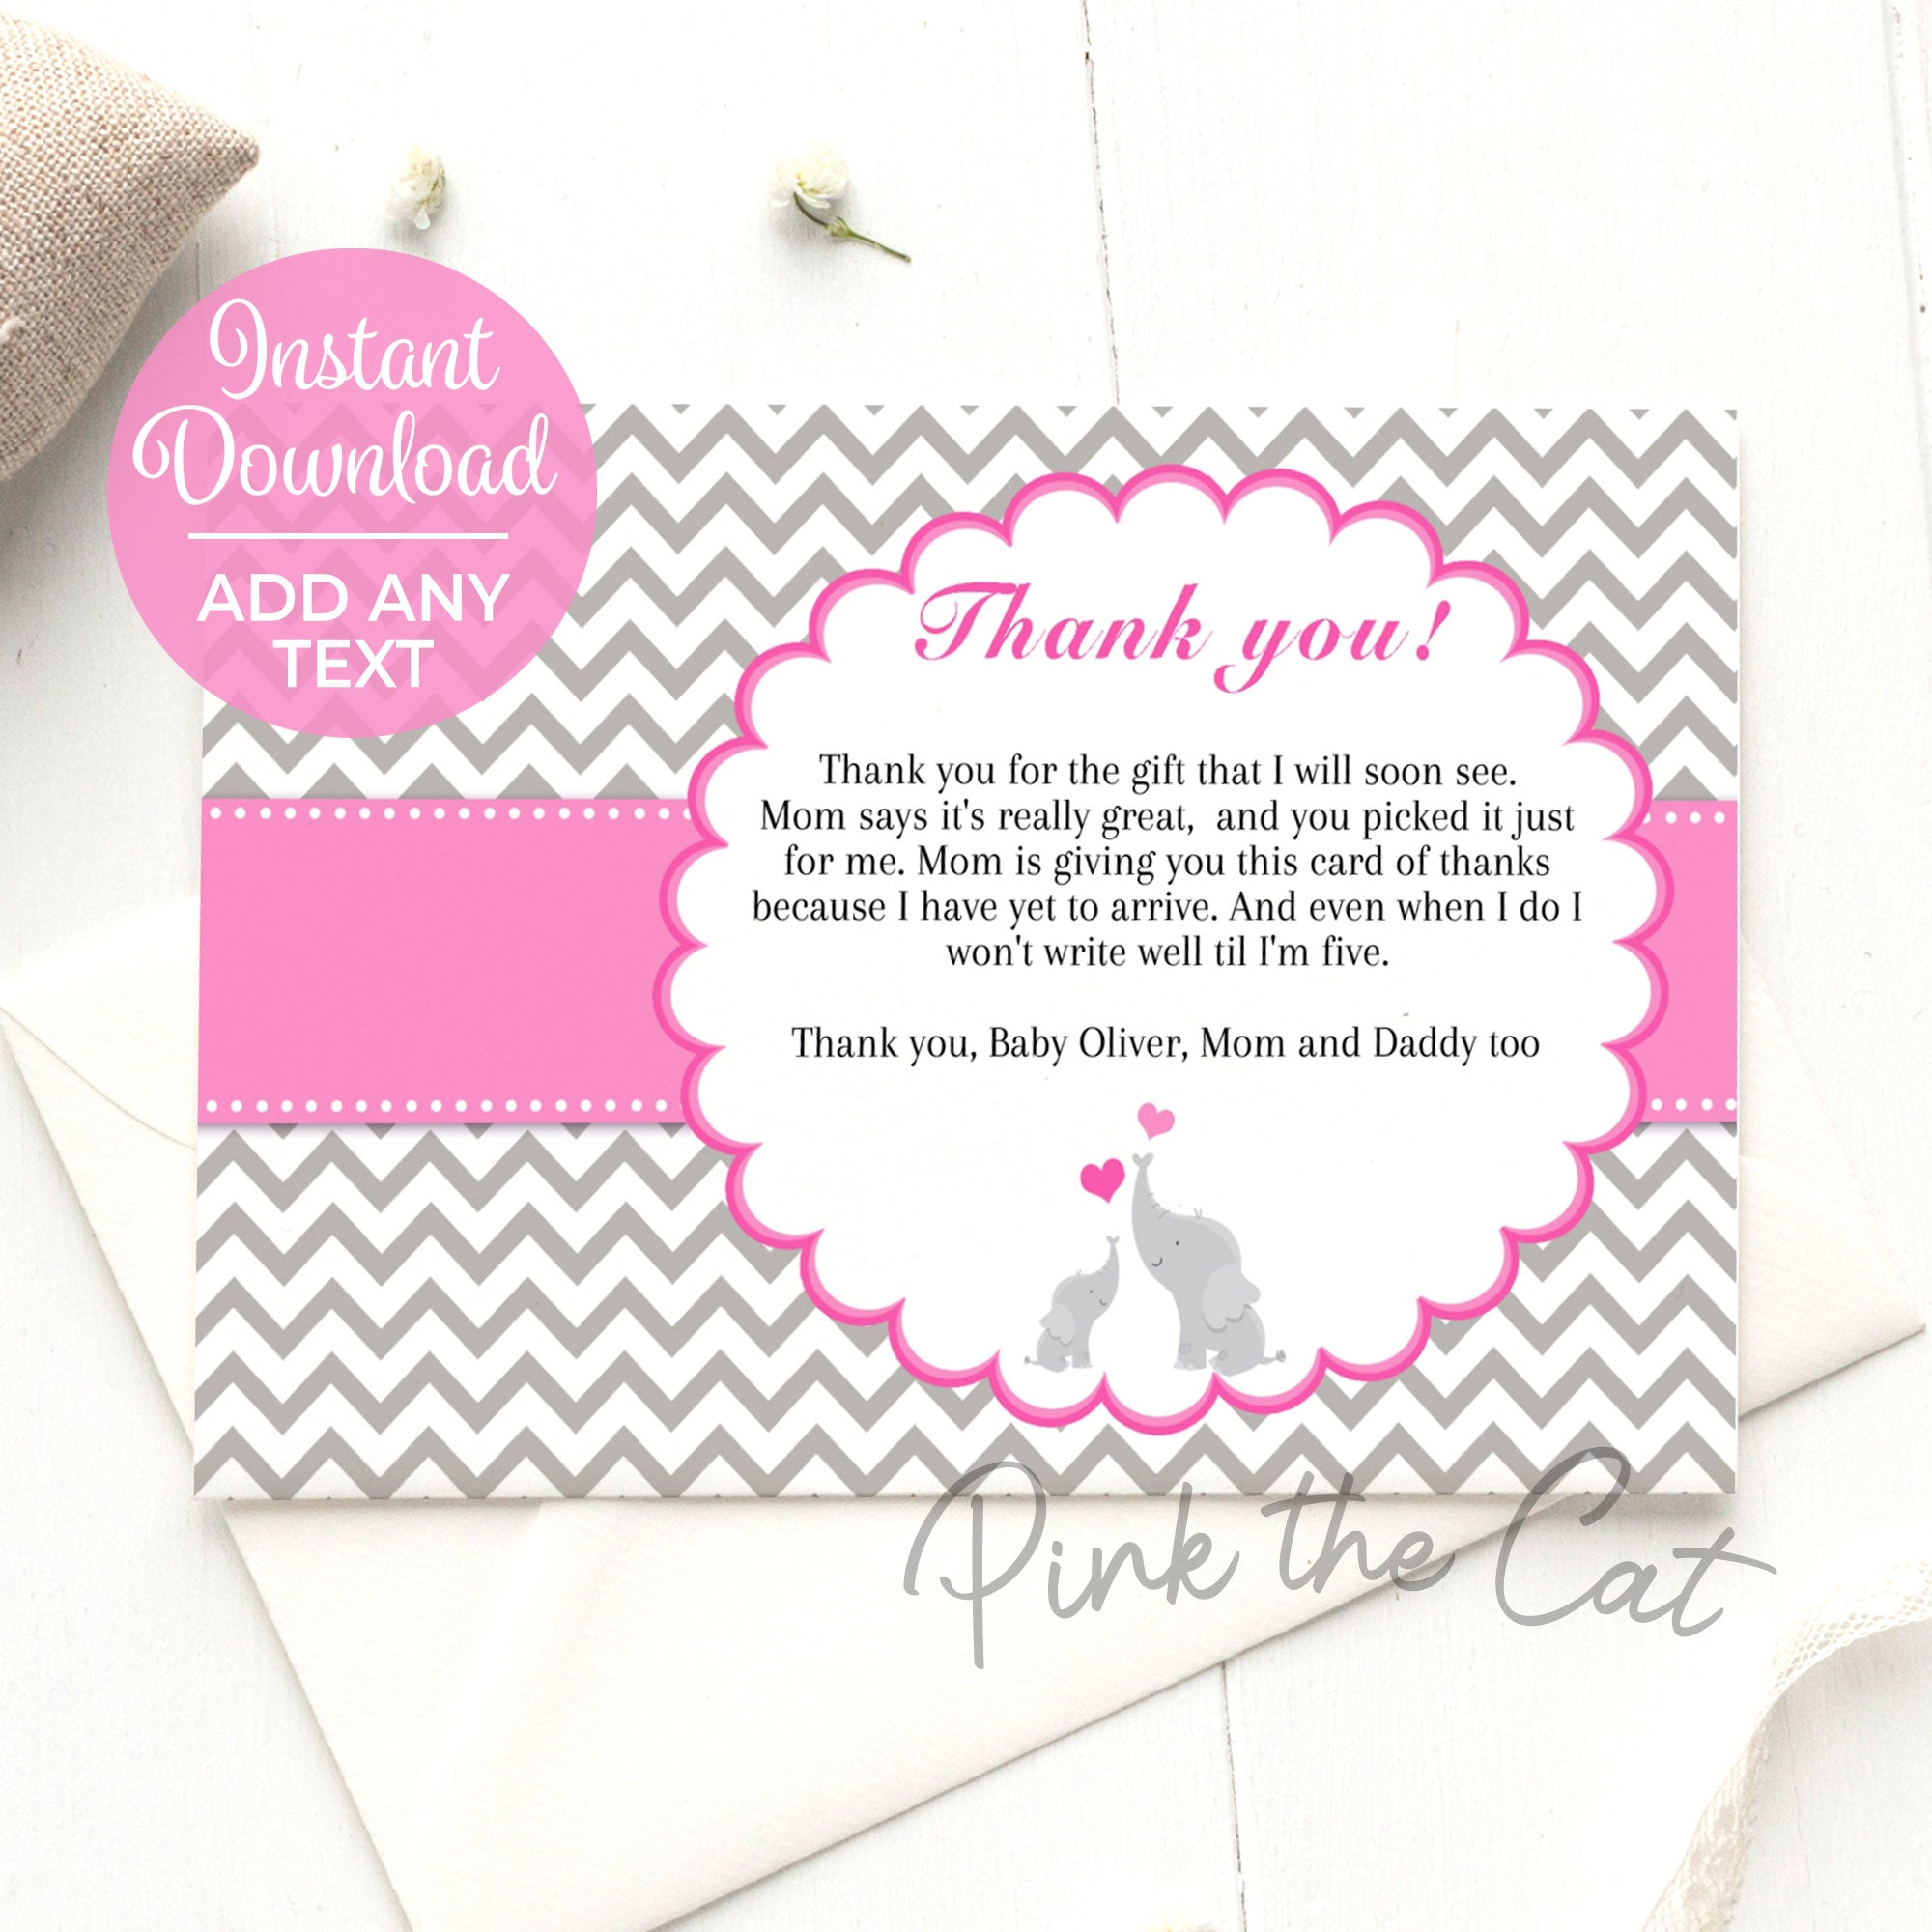 Elephant Baby Shower Thnk You Card Pink Silver Printable Template Pink The Cat